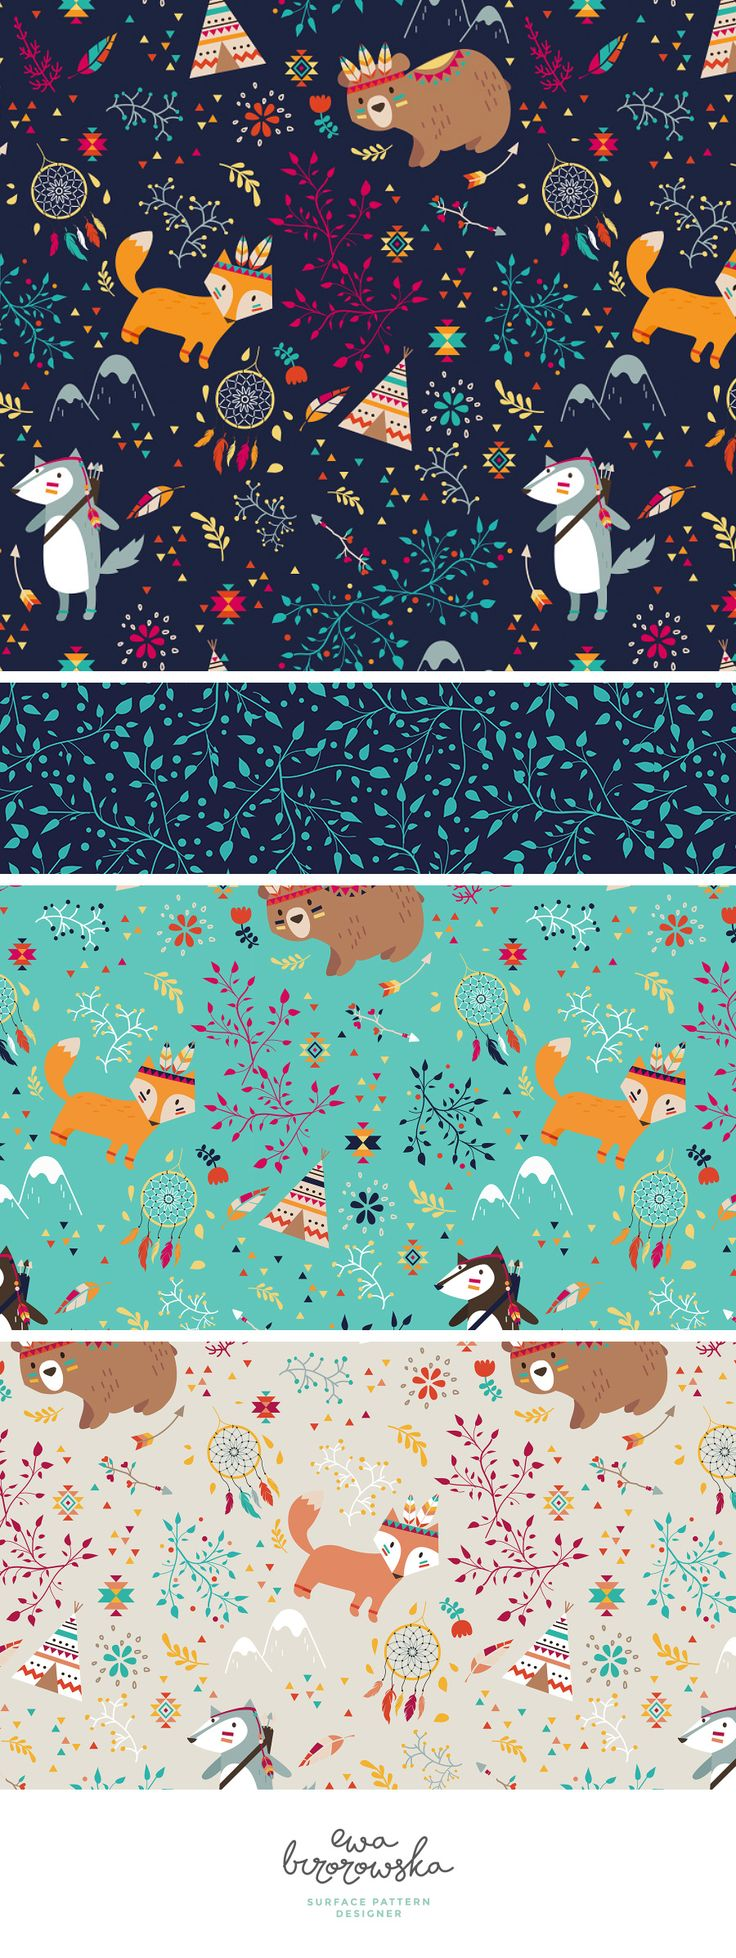 Tribal Adventure is a pattern I designed during the workshop with Elizabeth Olwen and participed with it in Spoonflower's Weekly Contest. It got to first 10 in the contest :) It's a mini-collection of pattern designs for children. The woodland, wood animals in different species: bear, fox and wolf. Just cute ;)